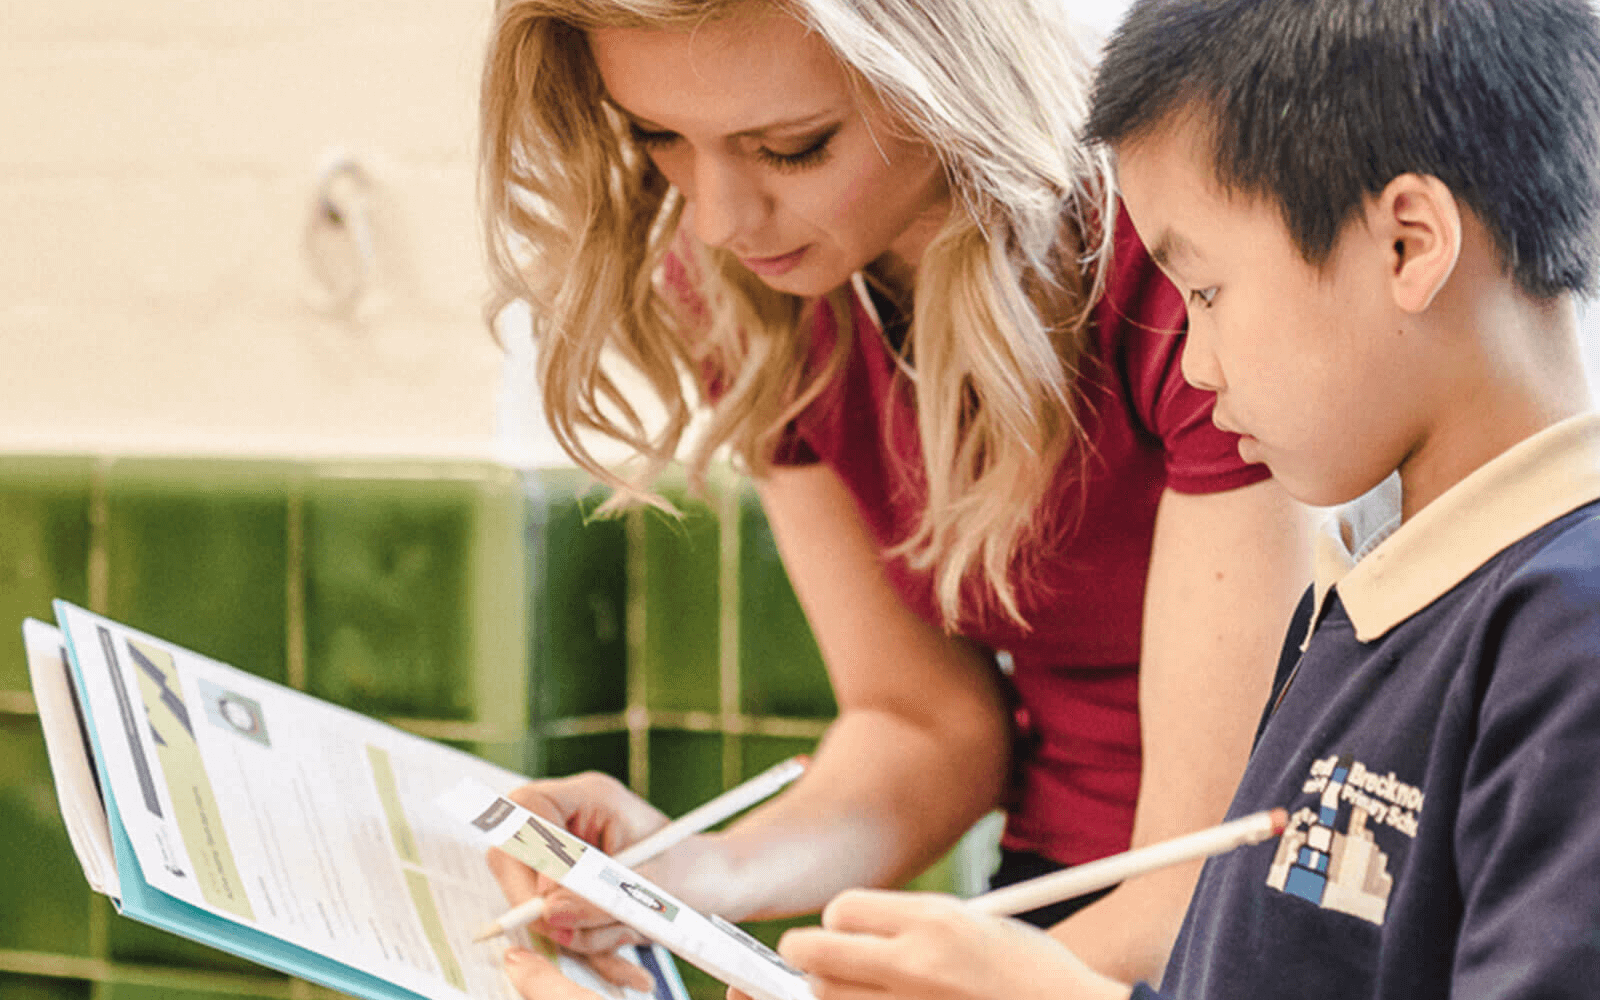 Image showing Rachel Riley aiding a pupil in their maths work during a lesson